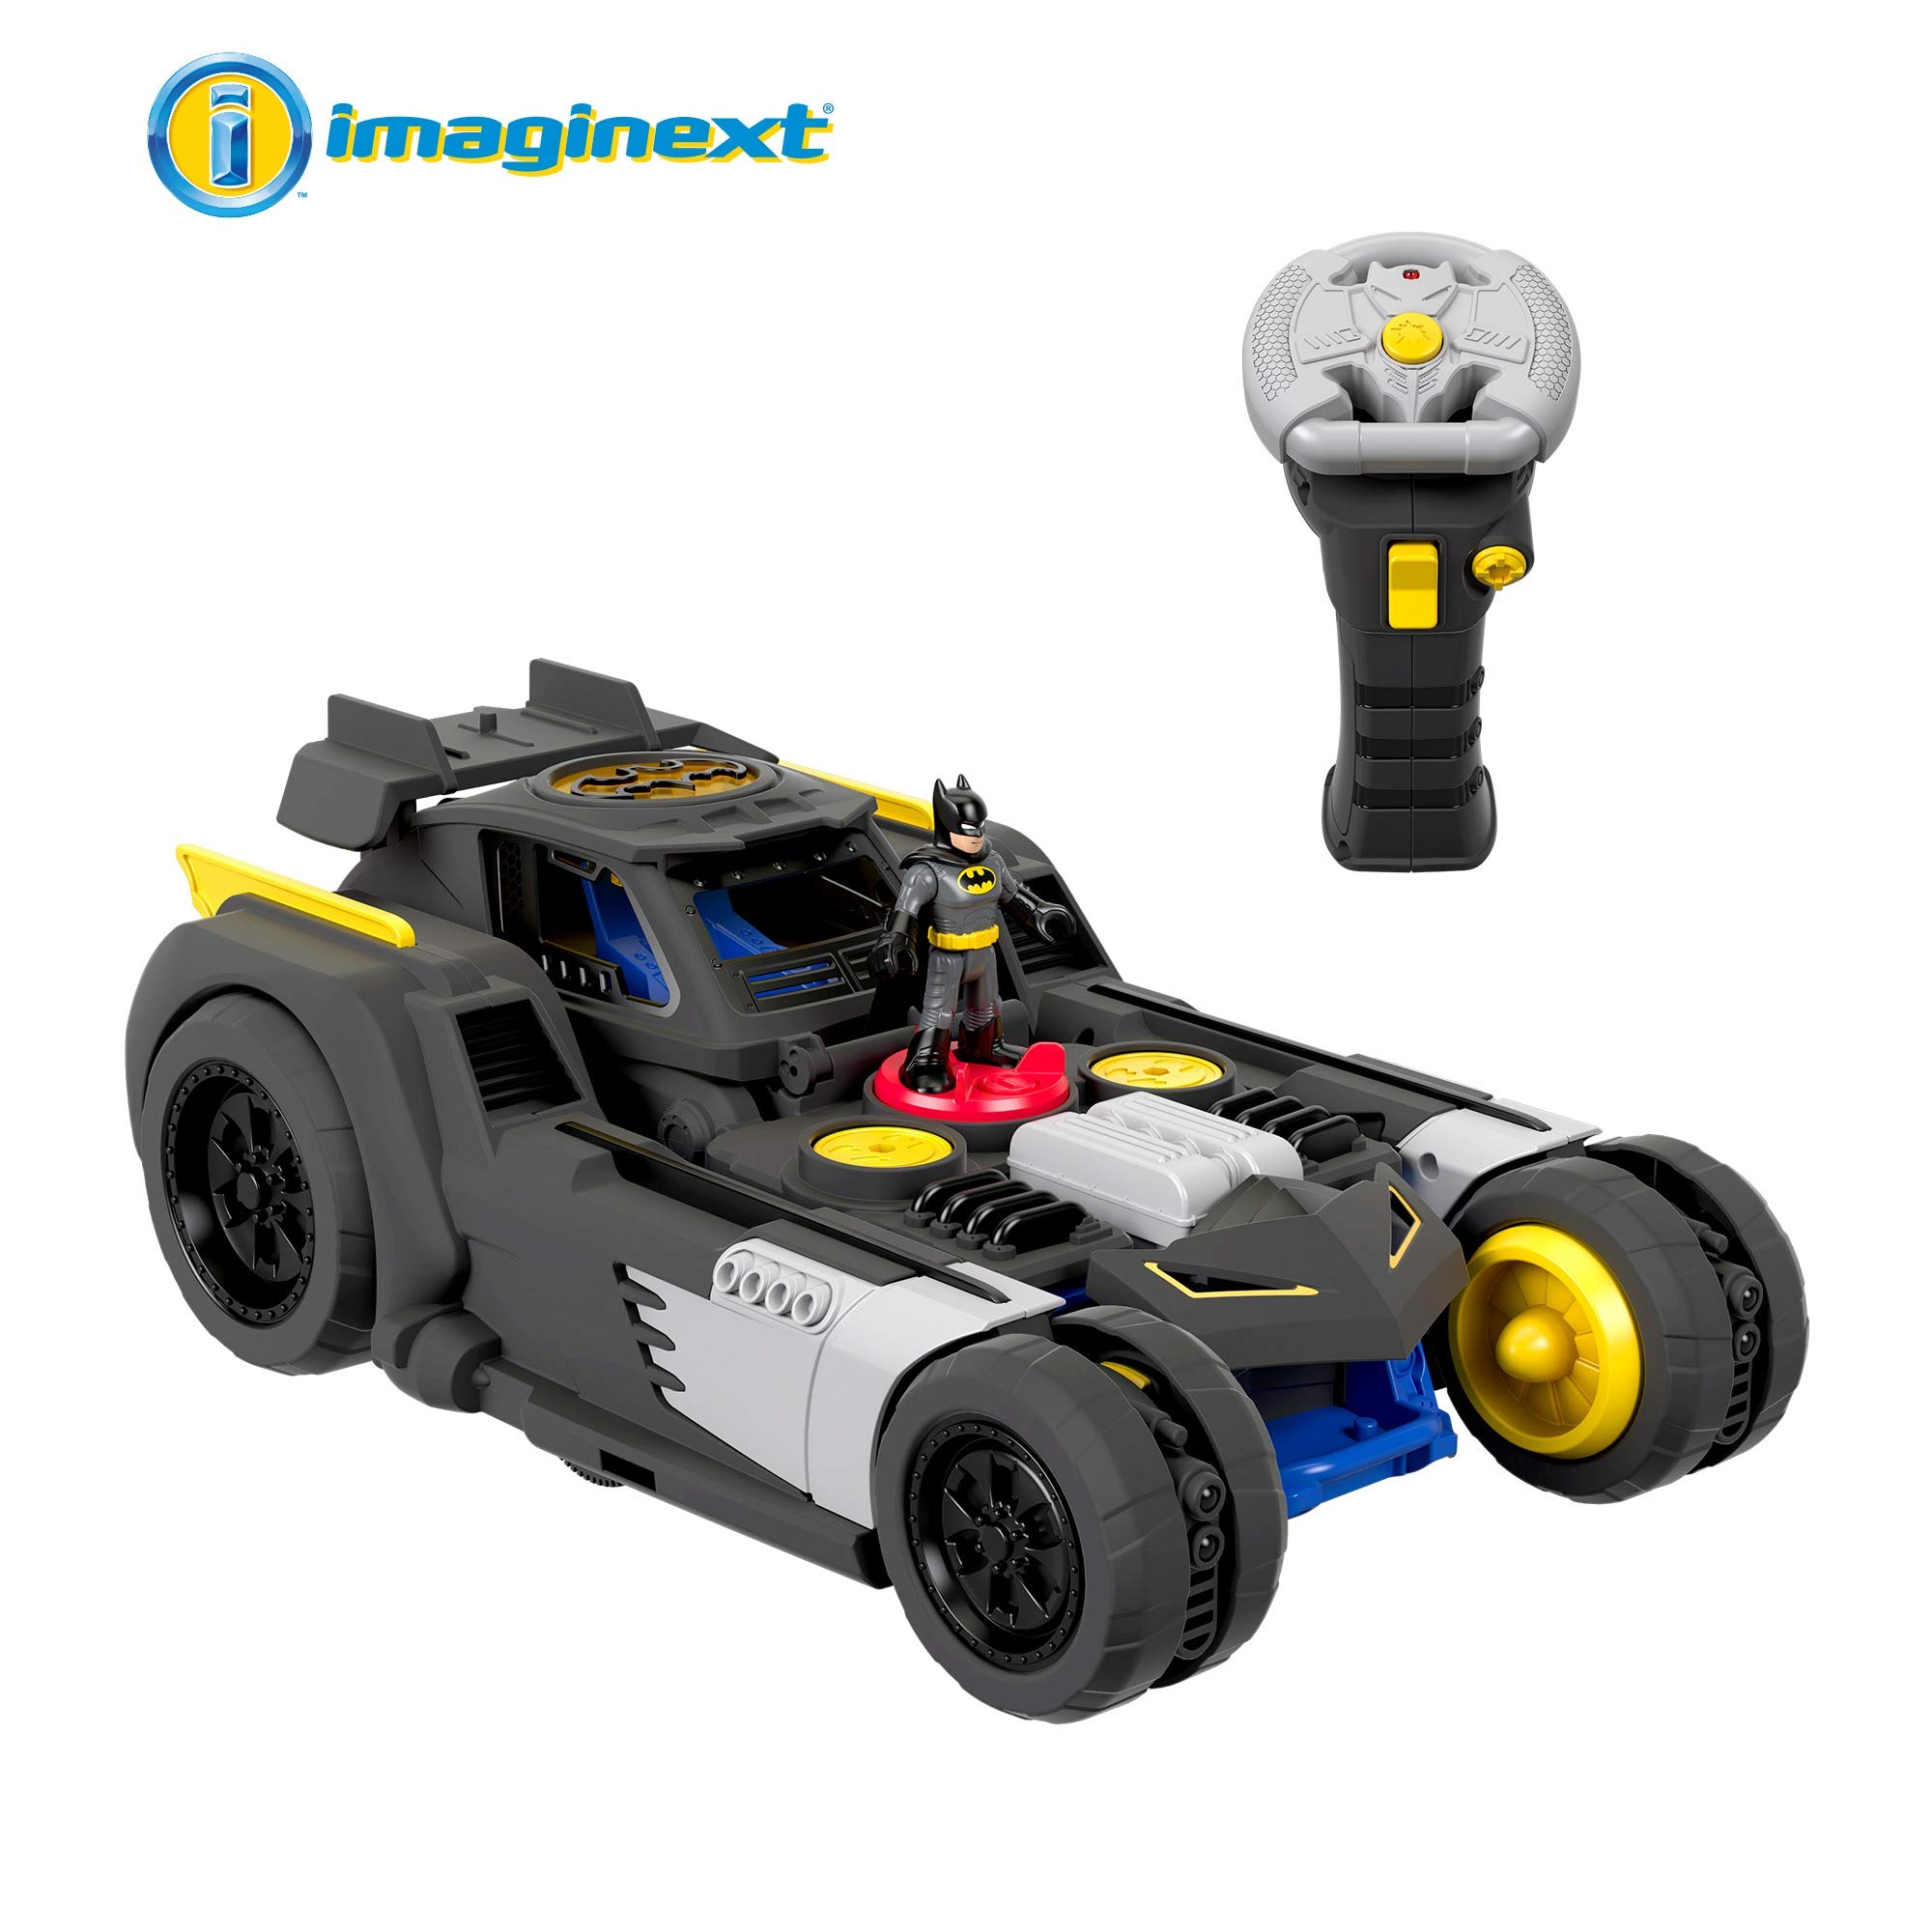 Fisher-Price-GBK77-Imaginext-DC-Super-Friends-Transforming-Batmobile-RC-Vehicle-Multicoloured